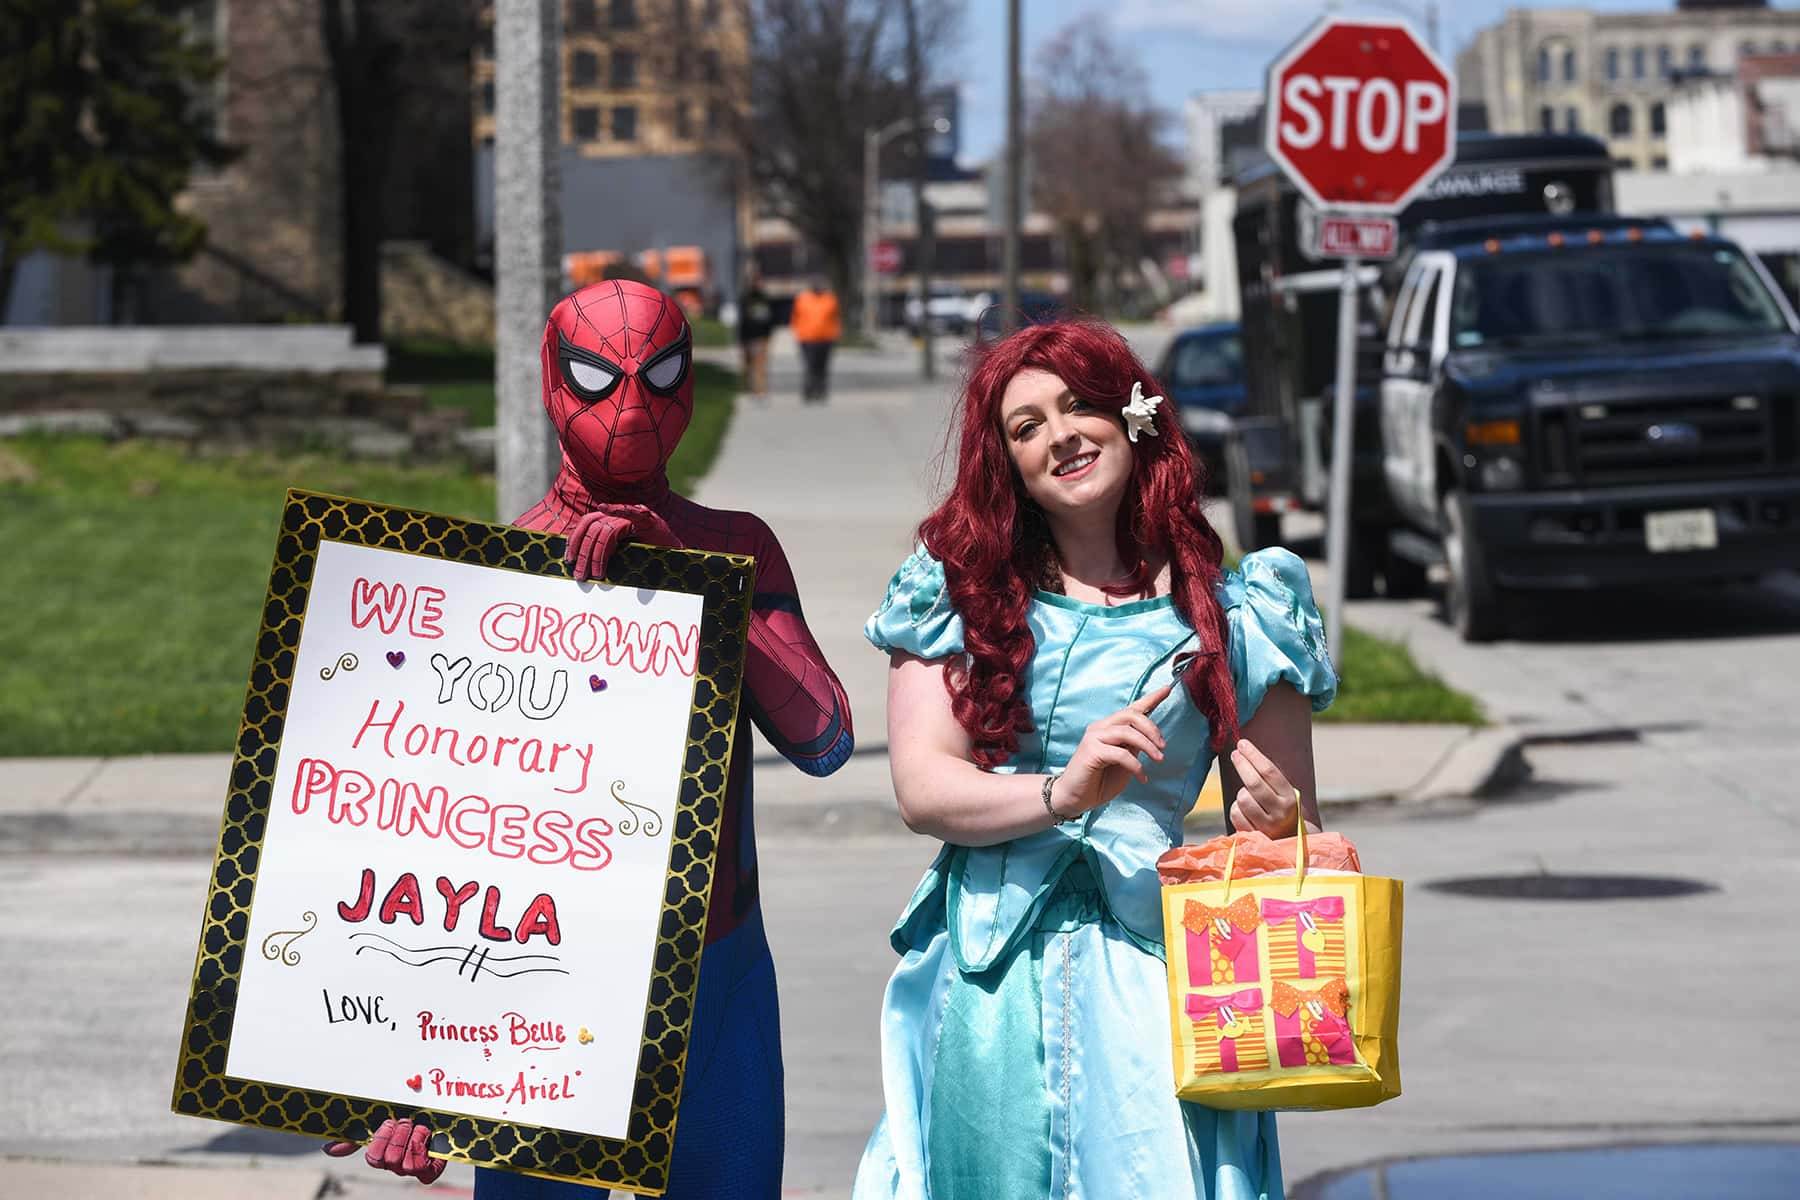 04_043020_jaylaparade_timholte_10